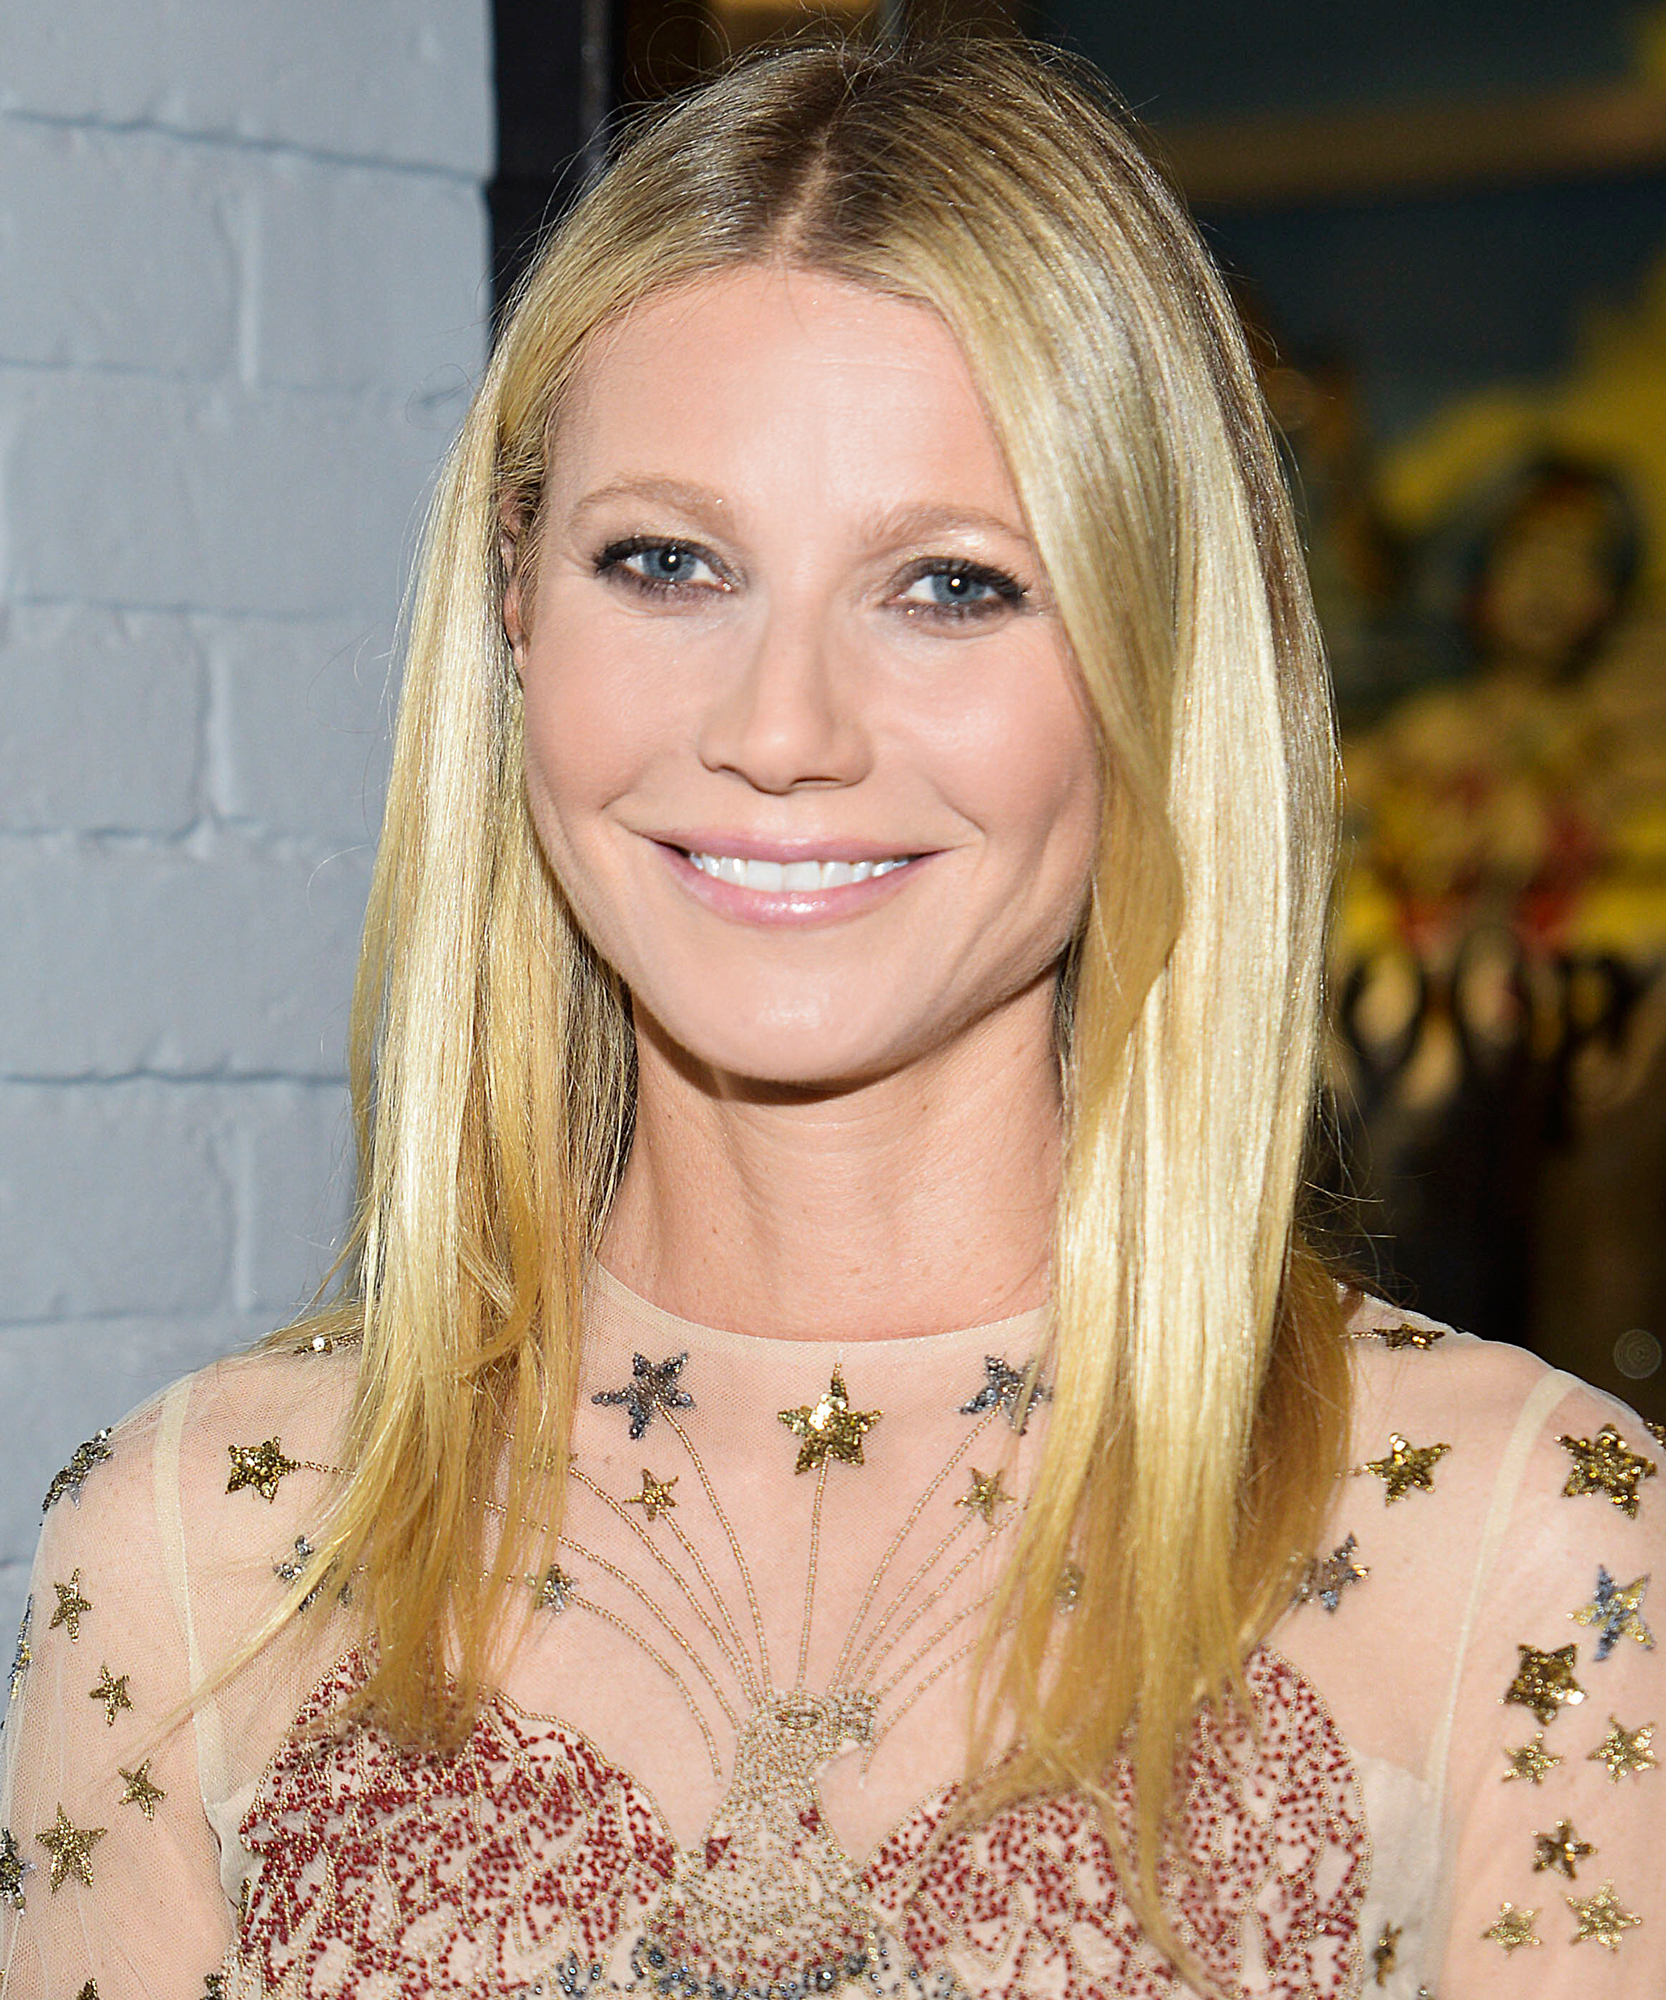 Gwyneth Paltrow attends the goop markt grand opening at The Shops at Columbus Circle on December 2, 2015 in New York City.